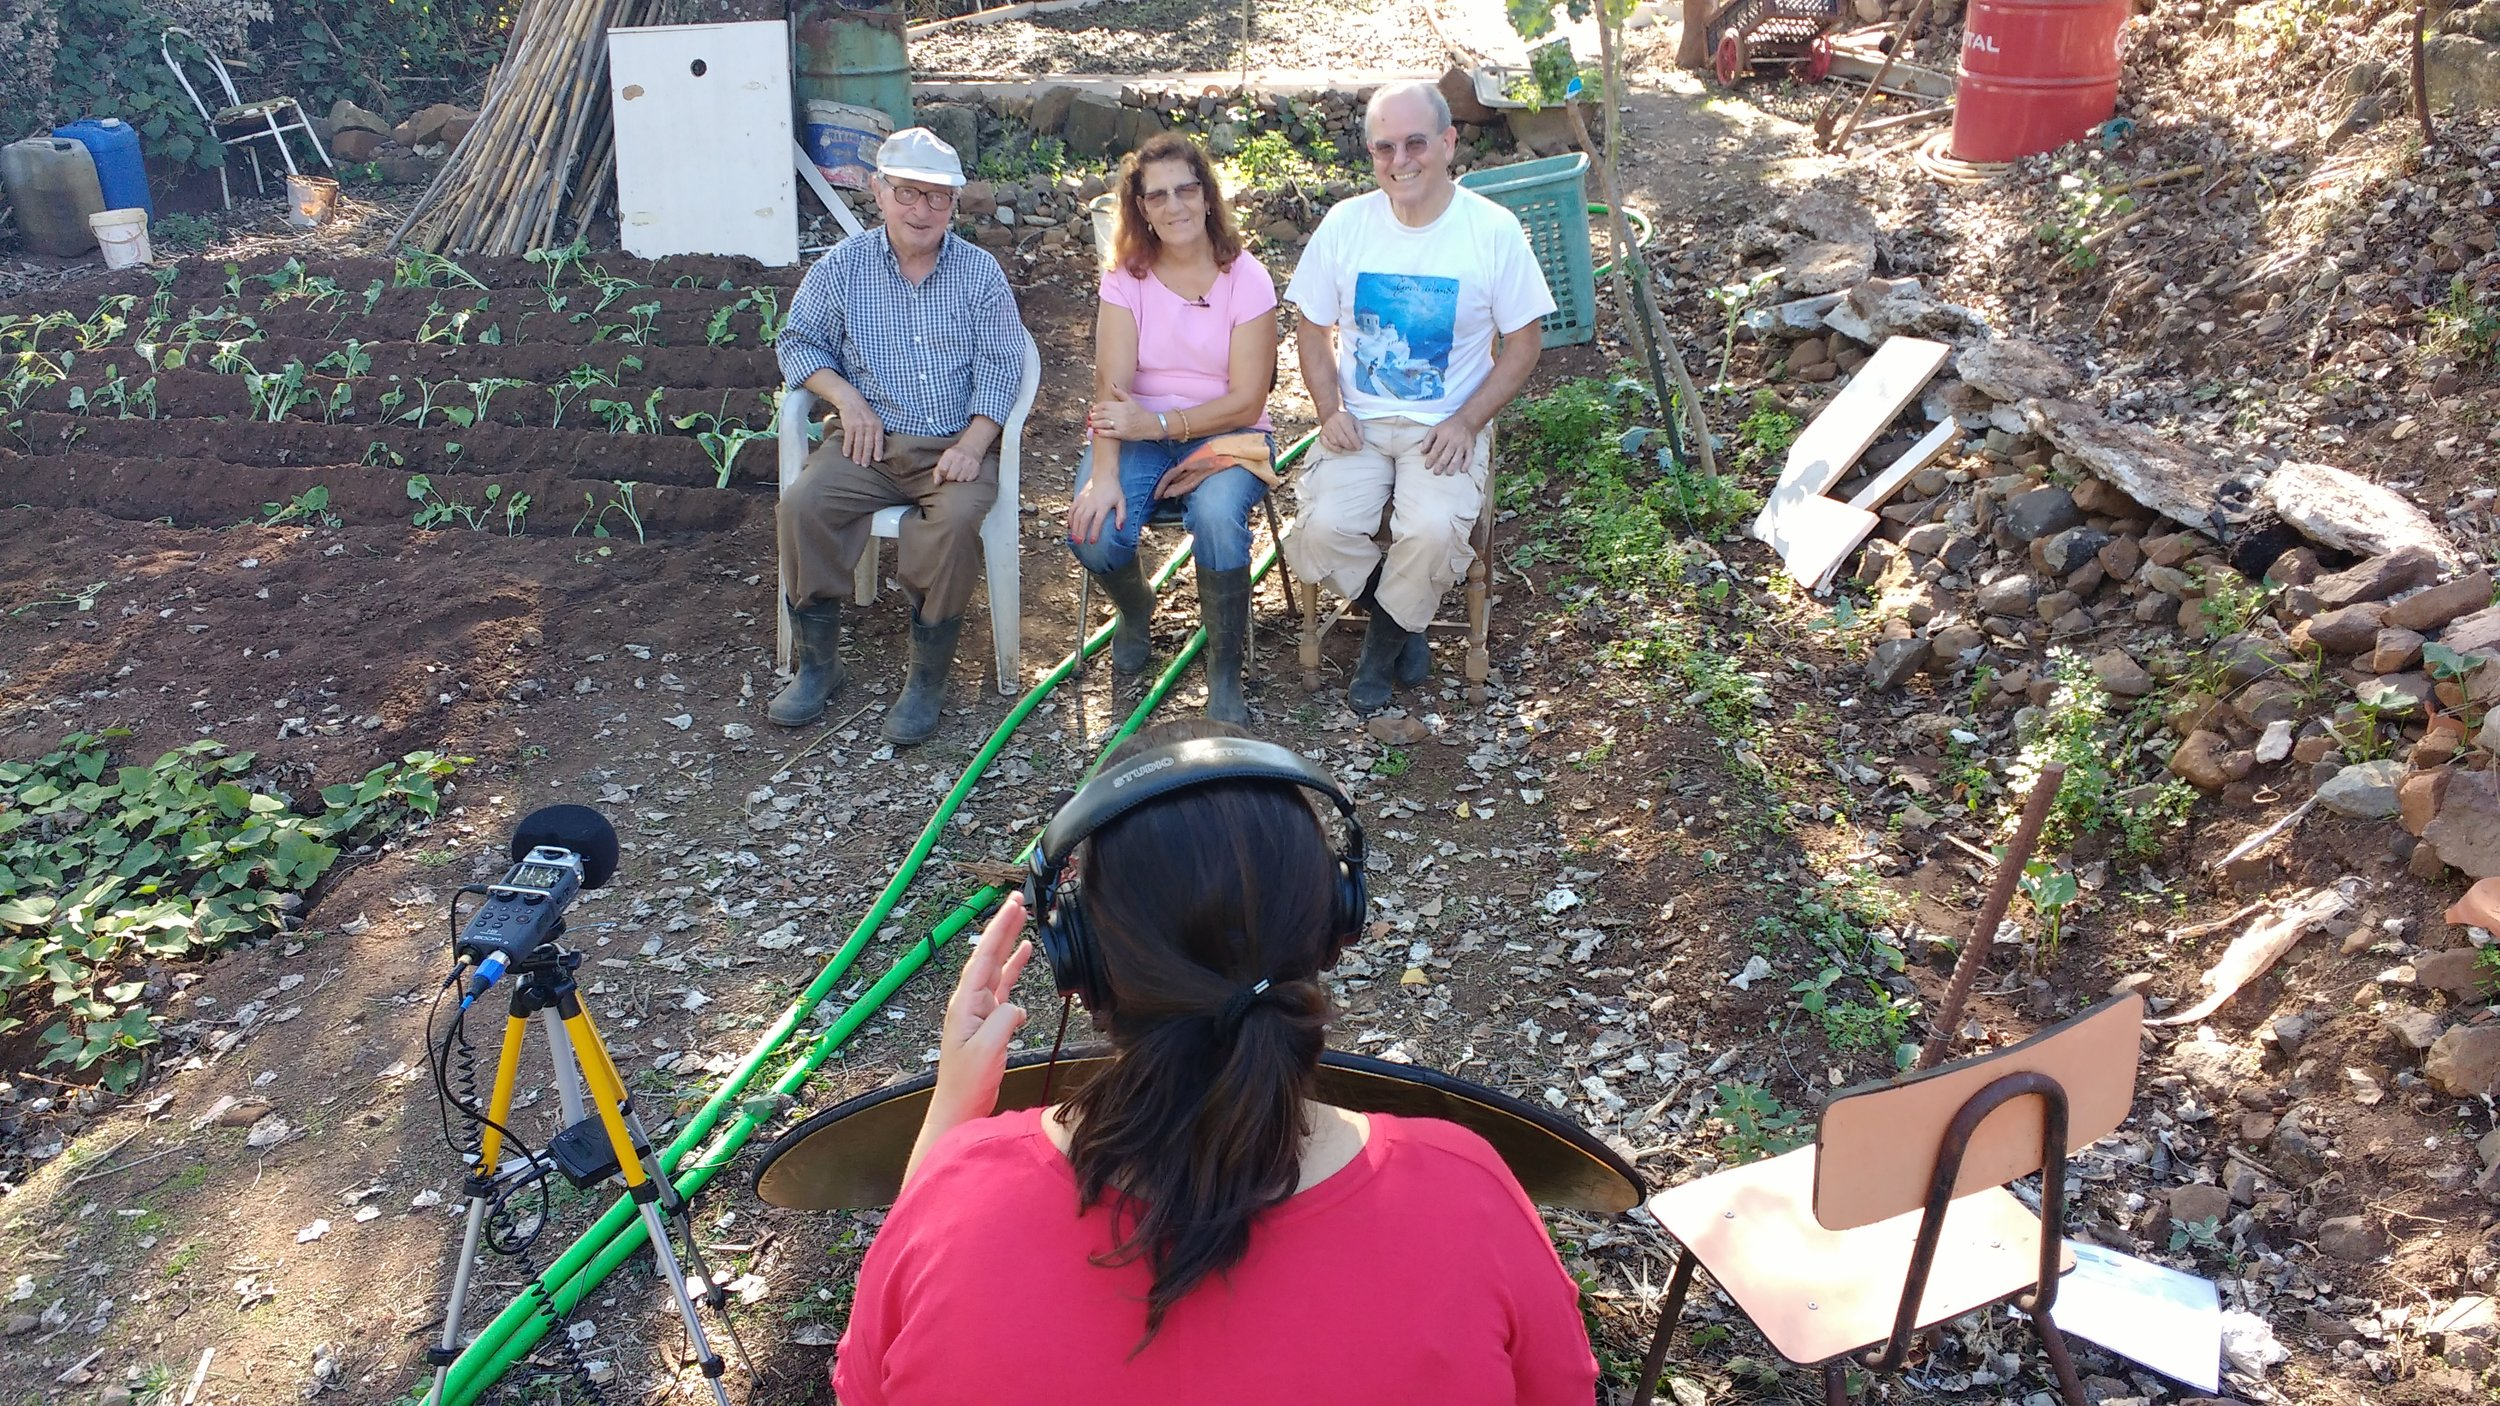 interviewing some squatters. photo by Squat a river